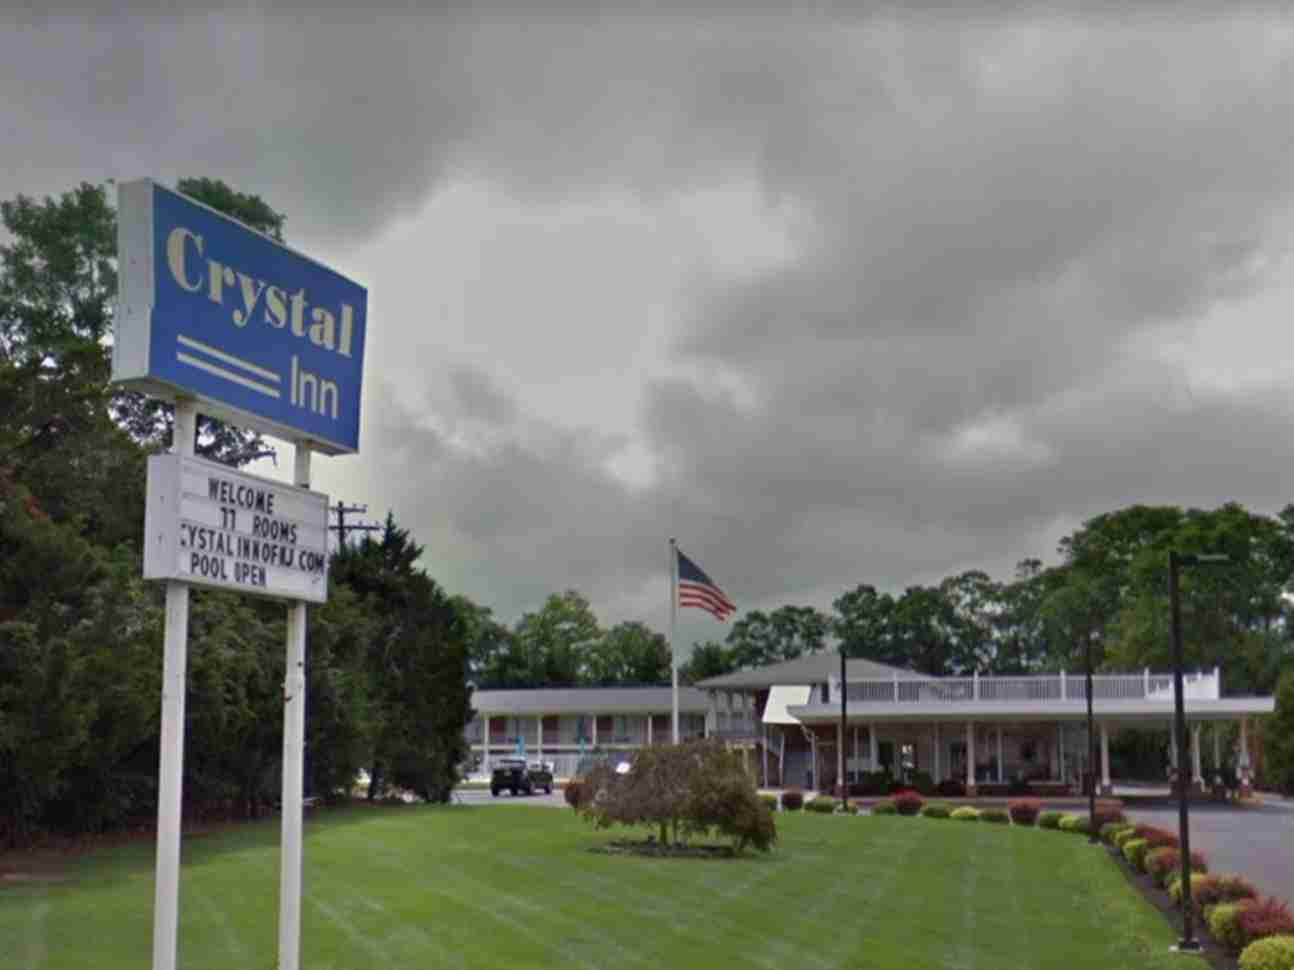 crystal point motel eatontown stabbing